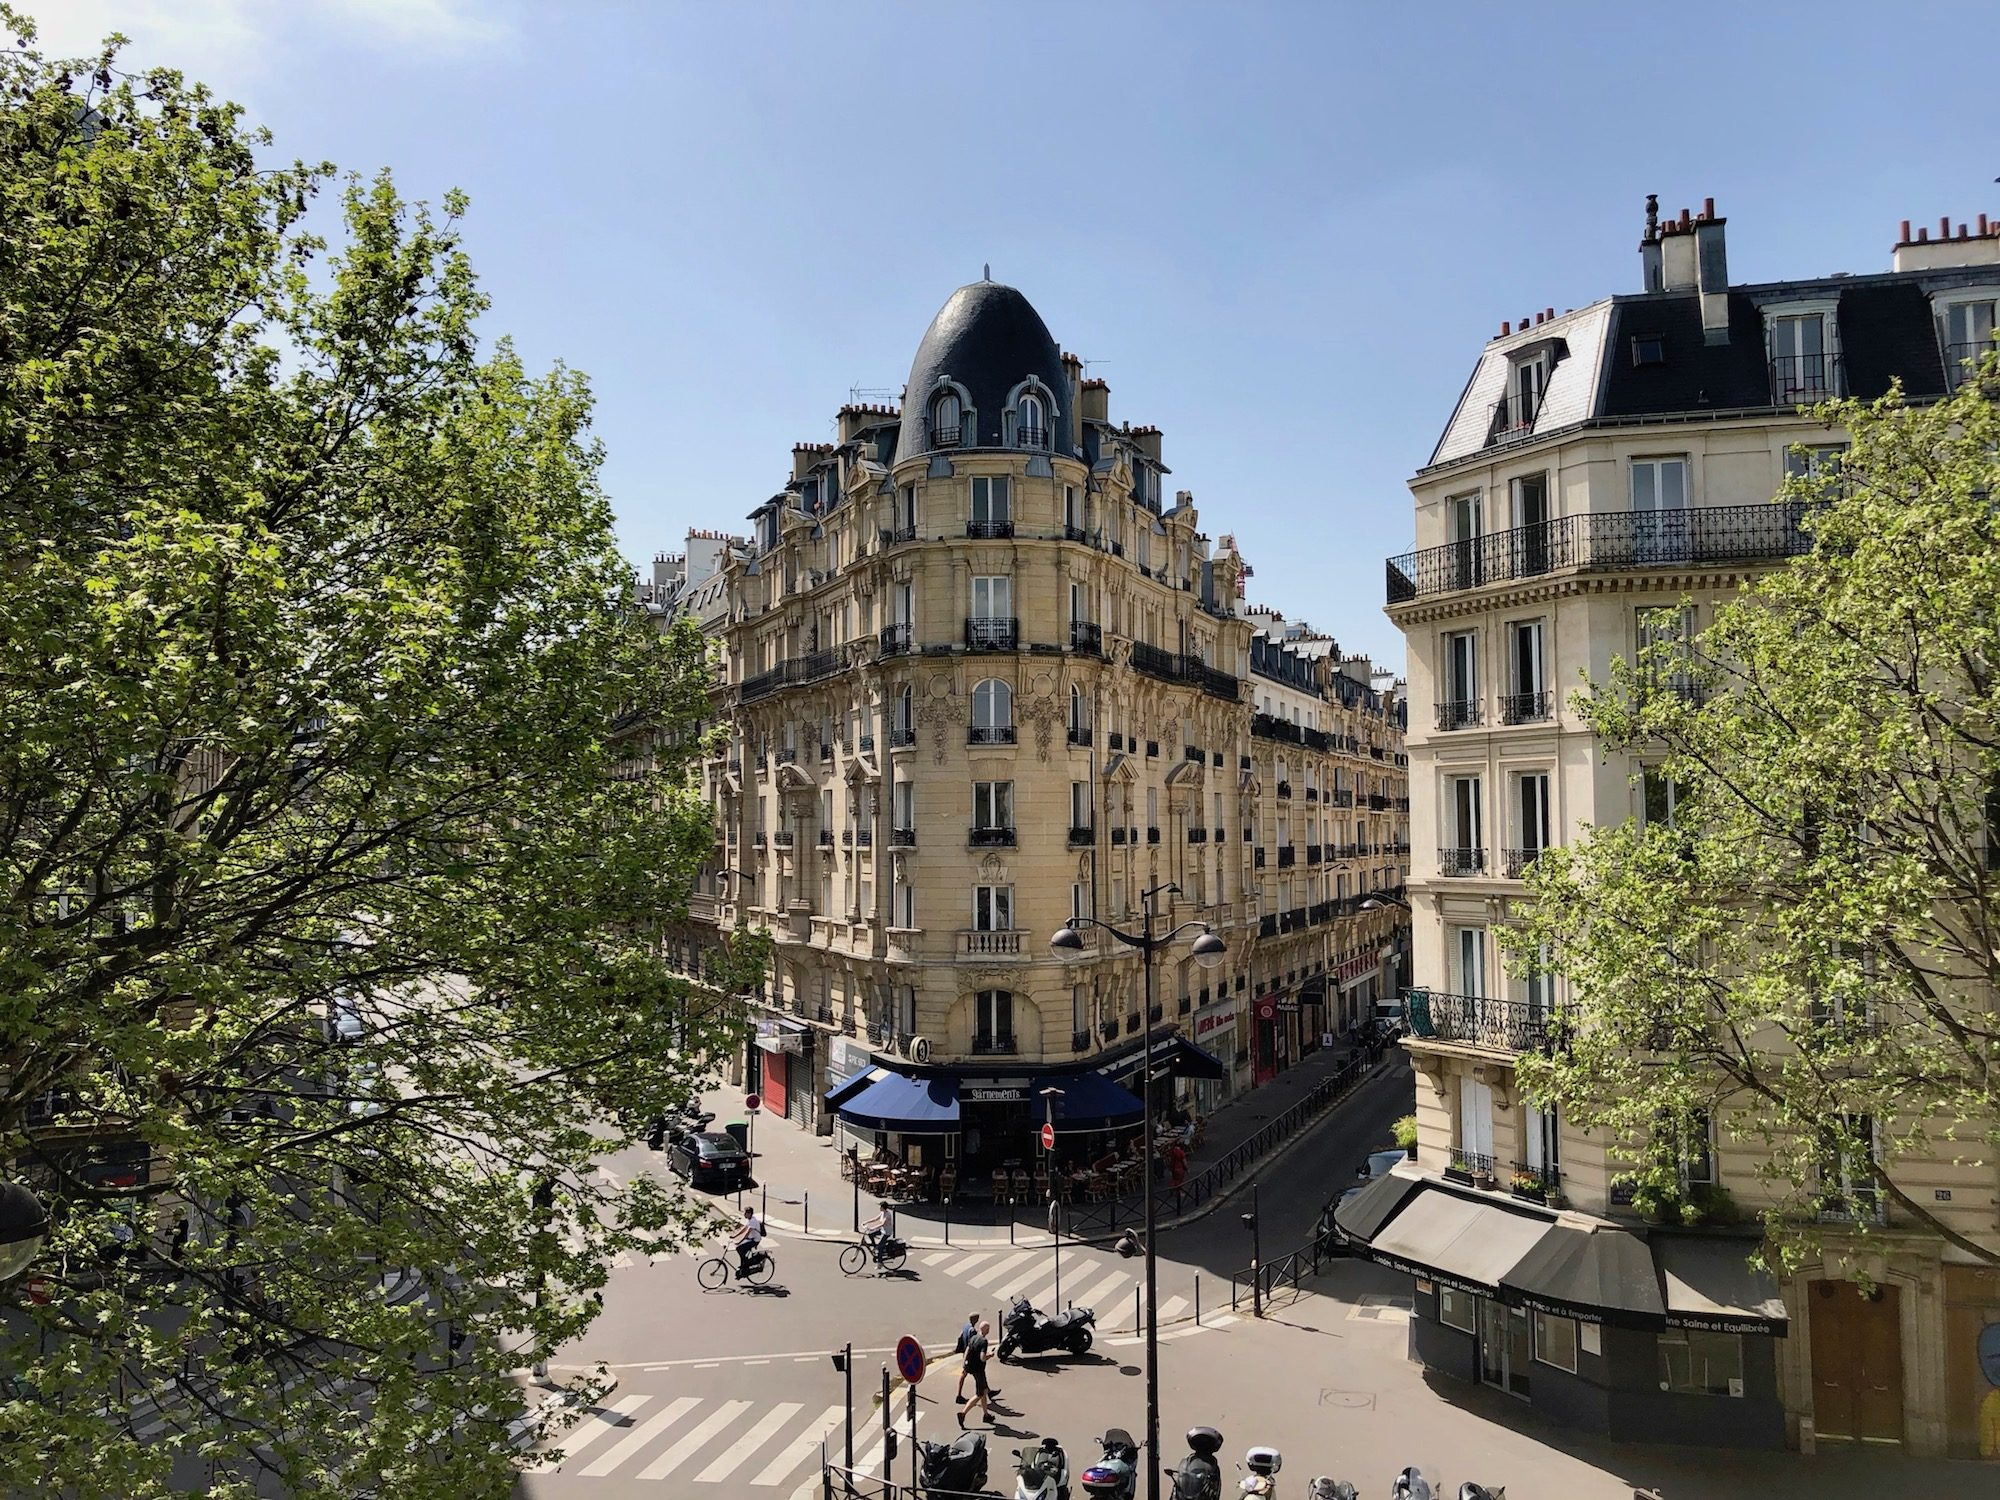 Paris is most beautiful in the summer with its Haussmann architecture gleaming in the sunshine.